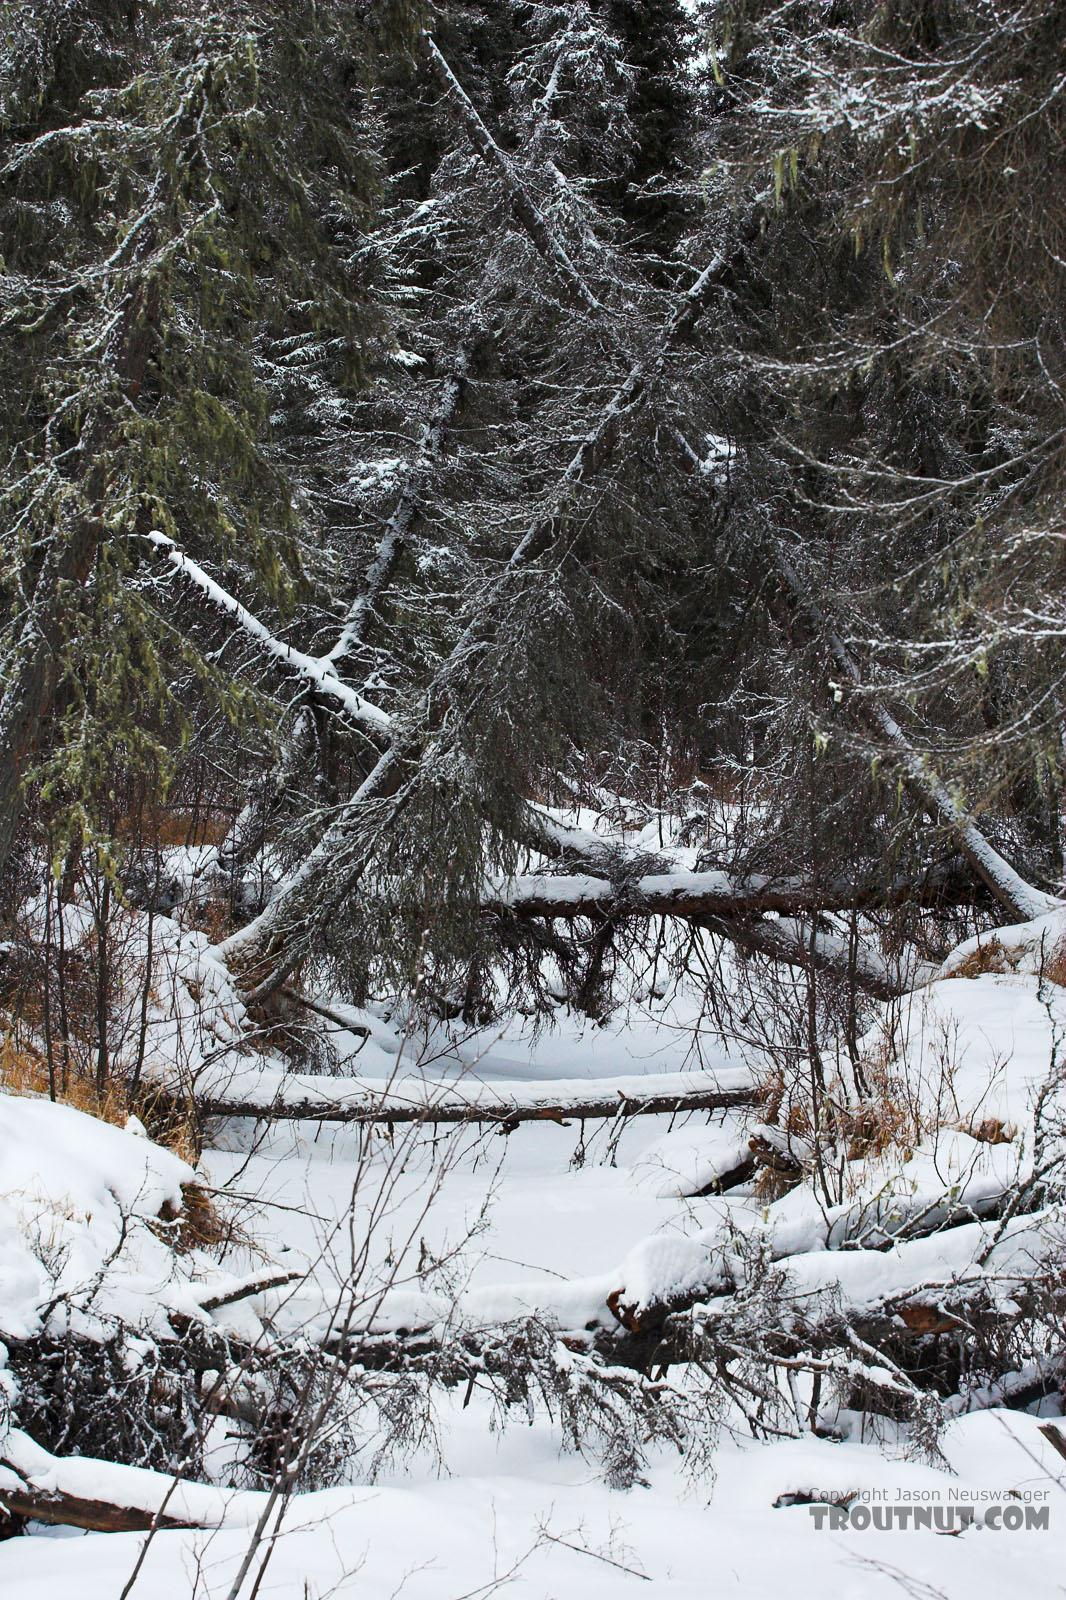 A tangled canopy of fir trees overhangs a small, completely frozen tributary of a grayling stream in central Alaska. From Chena Hot Springs Road in Alaska.